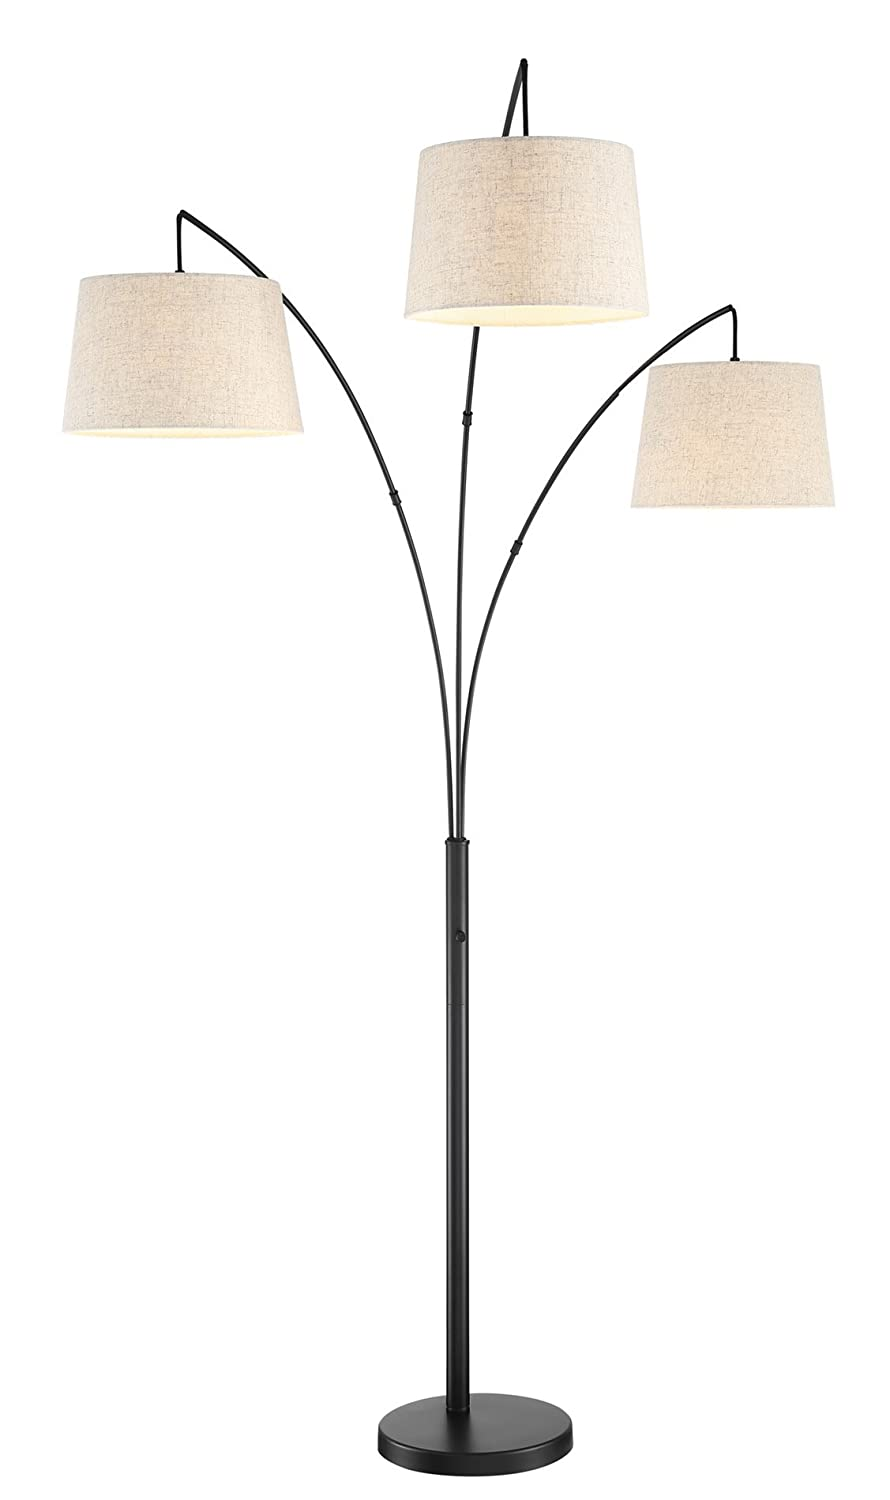 "Kira Home Akira 78.5"" Modern 3-Light Arc Floor Lamp with 3-Way Switch, Oatmeal Shades + Oil Rubbed Bronze Finish"